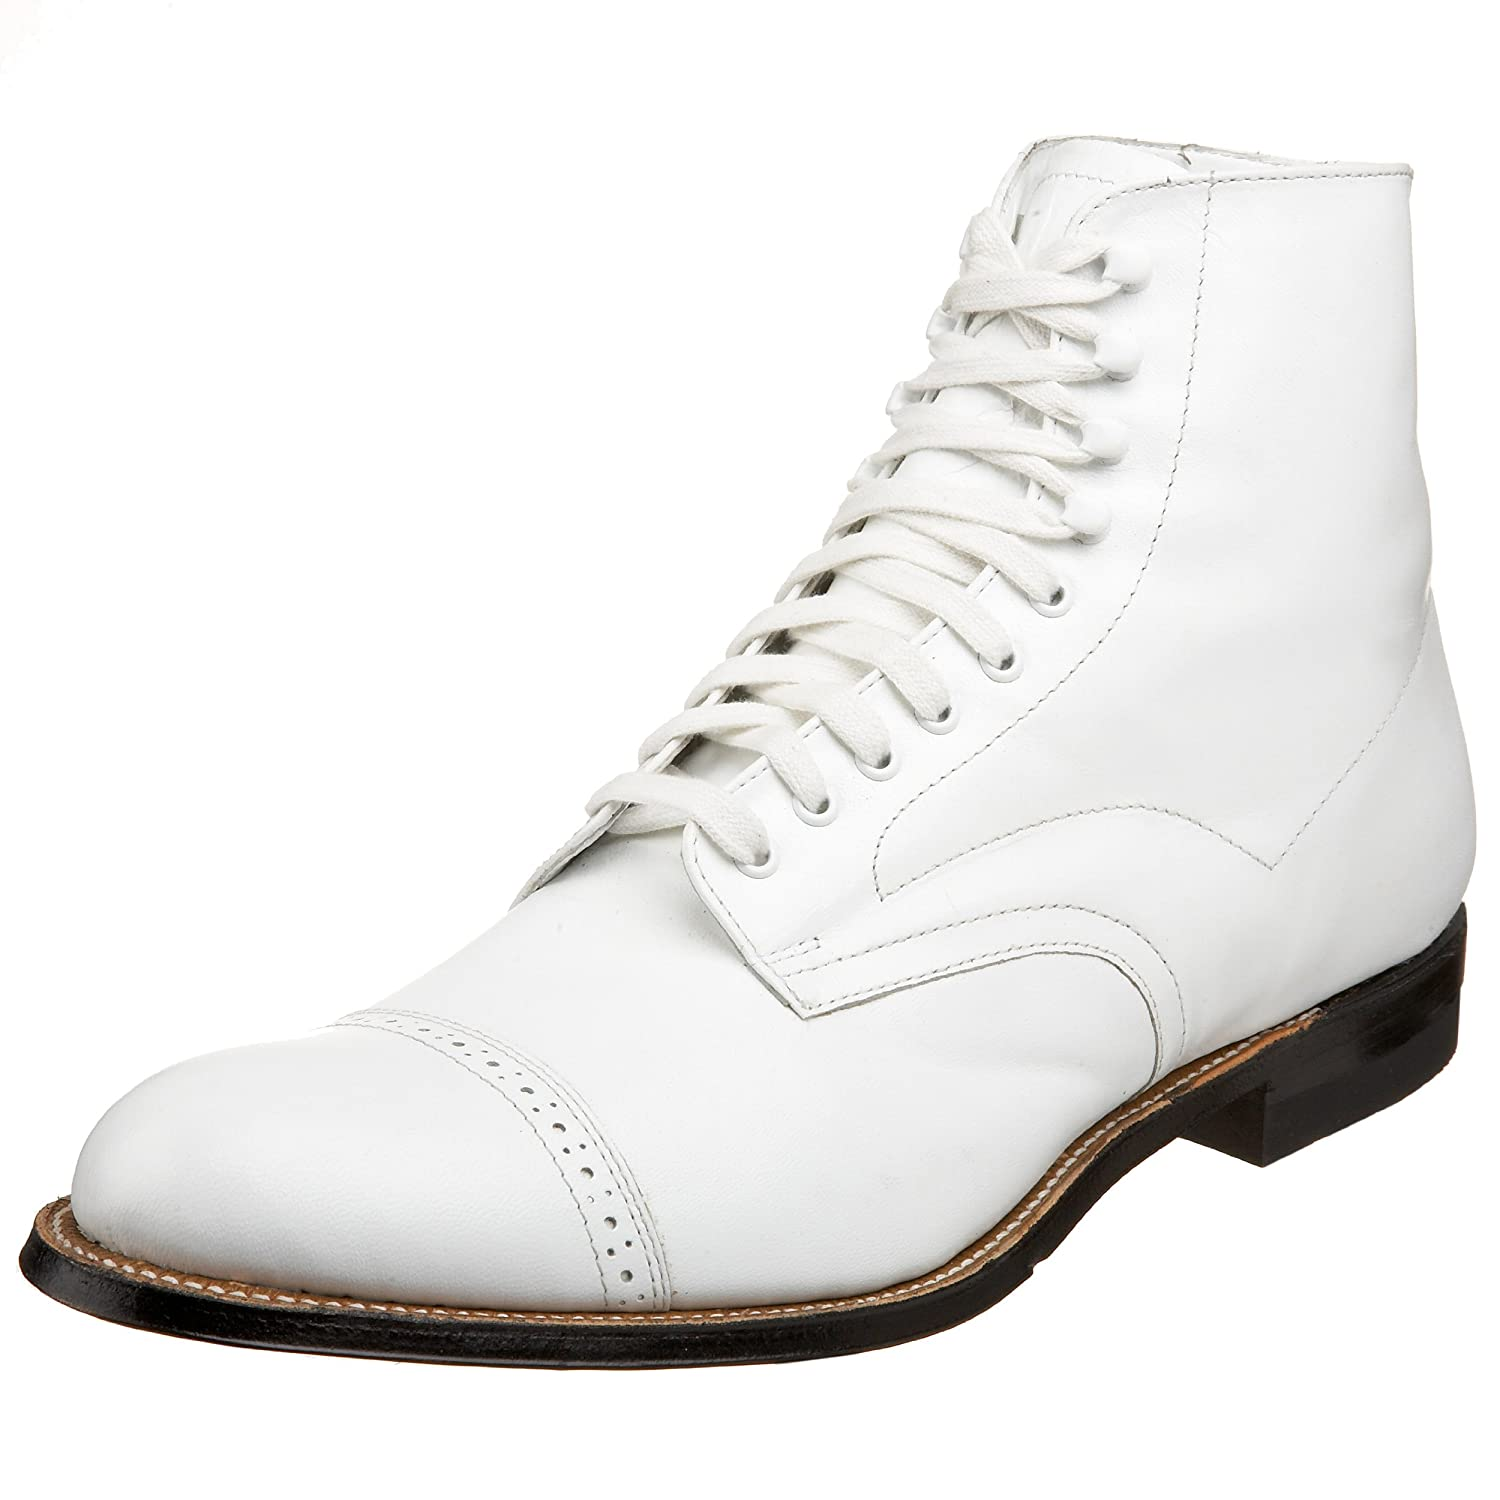 1920s Style Mens Shoes | Peaky Blinders Boots Stacy Adams Mens Madison Boot $135.00 AT vintagedancer.com